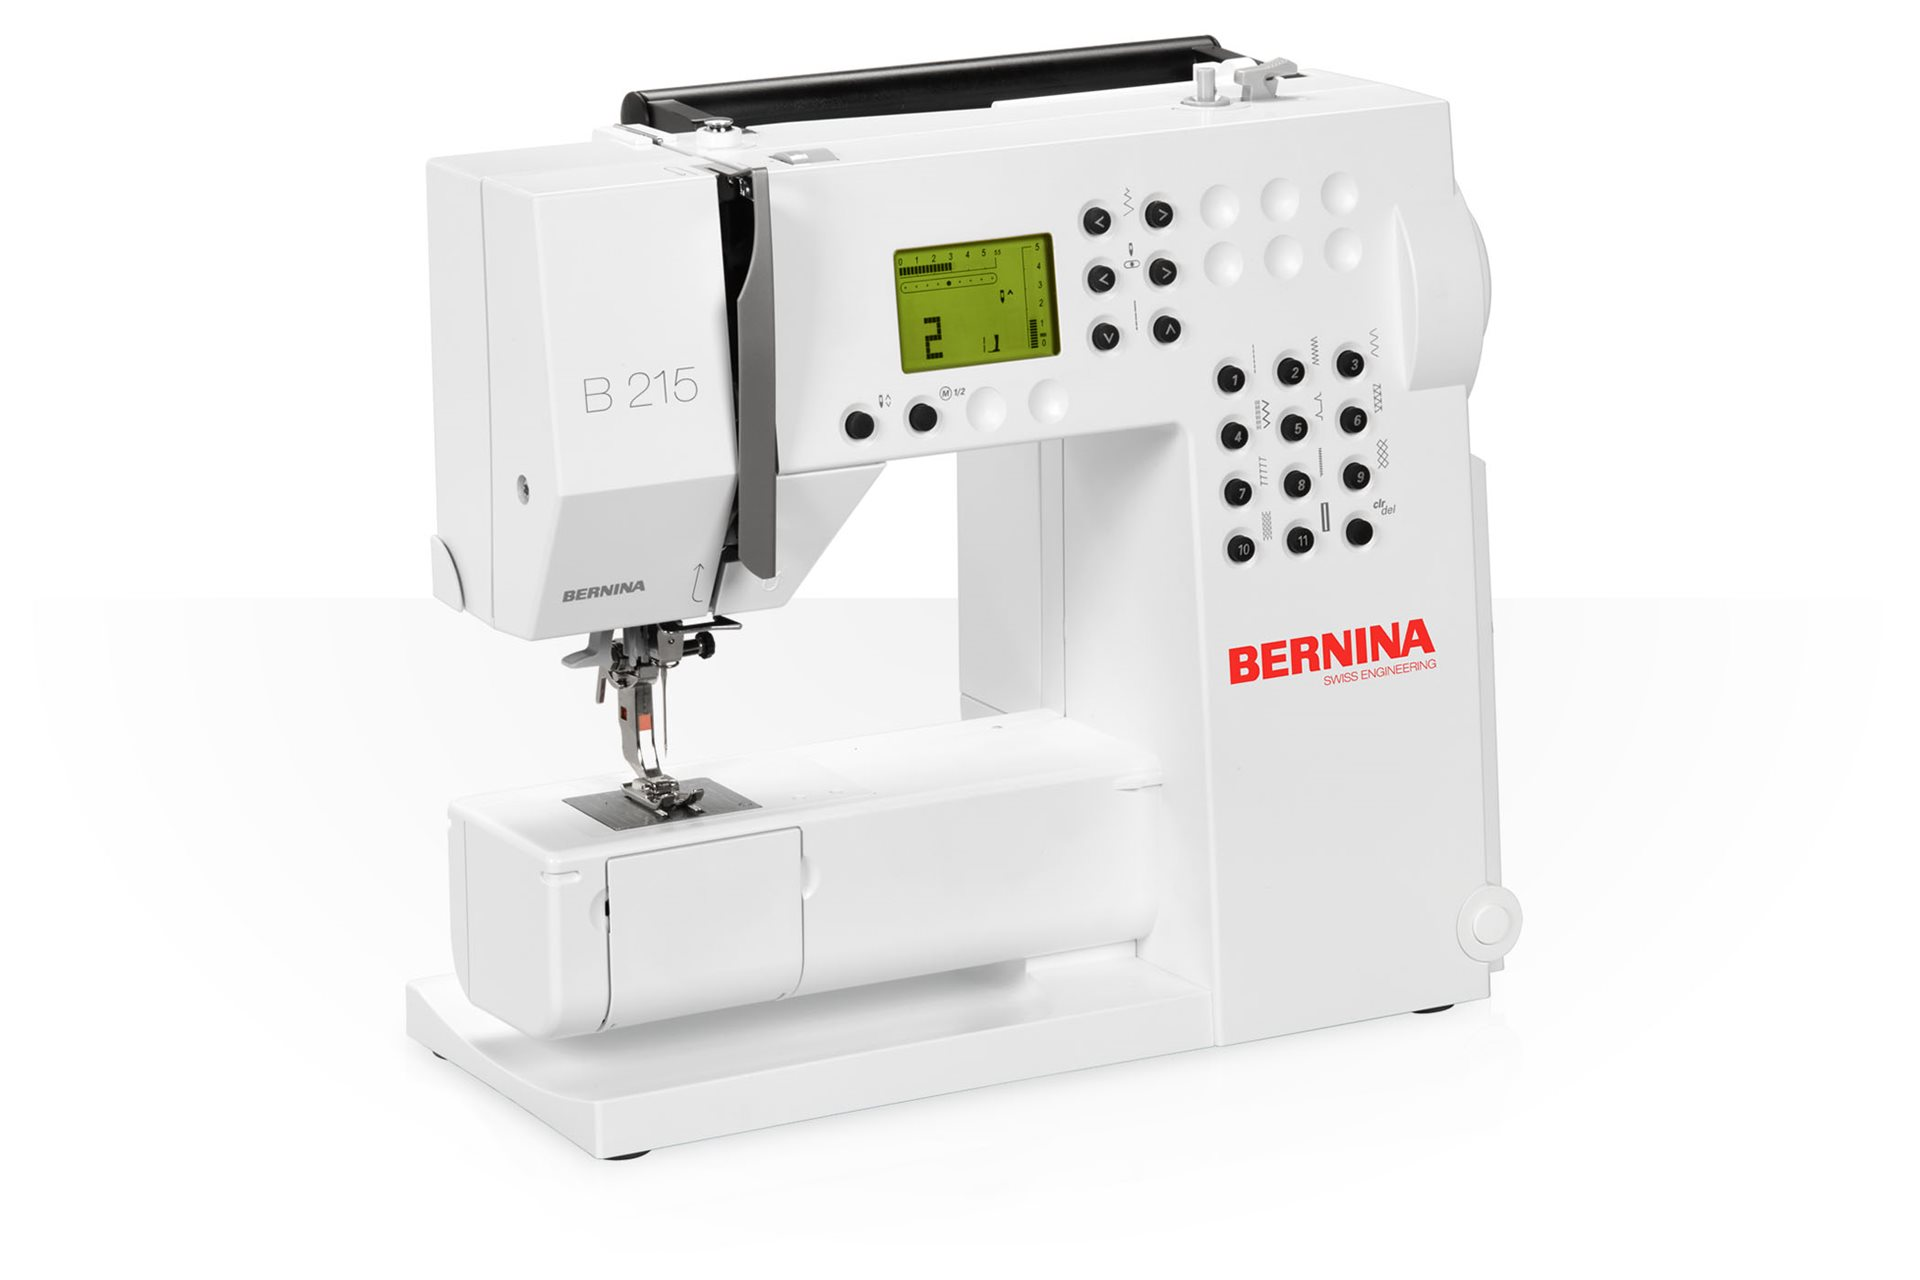 BERNINA 215 – easy handling down to the fine details - BERNINA